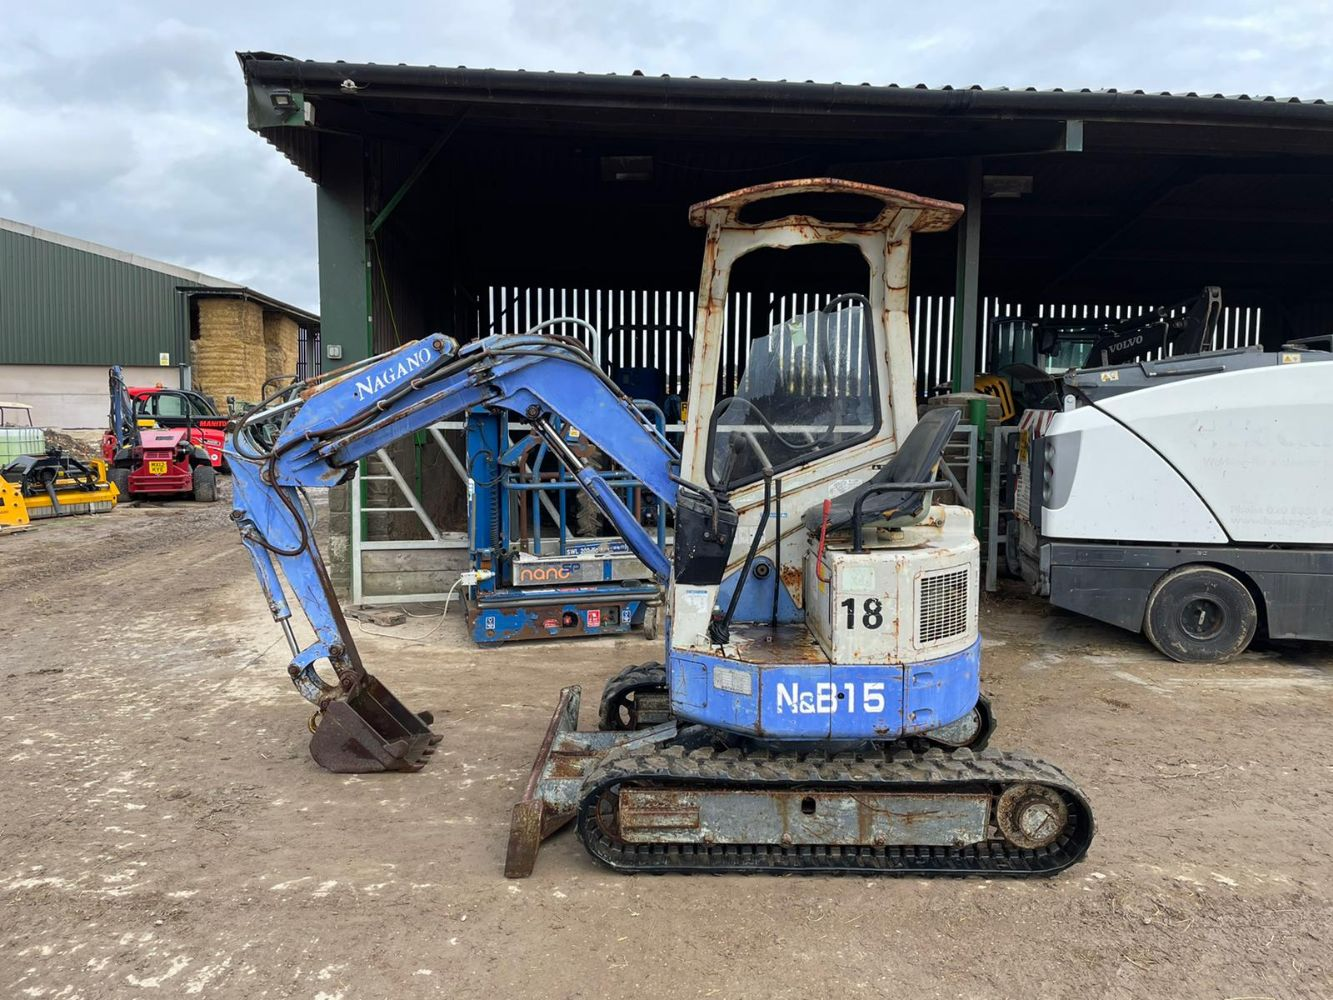 CARS VANS BIKES TRACTORS DIGGERS TRAILERS MASERATI SUZUKI LHD MERCEDES DUMPER MUSTANG G WAGON. ENDING SUNDAY FROM 7PM